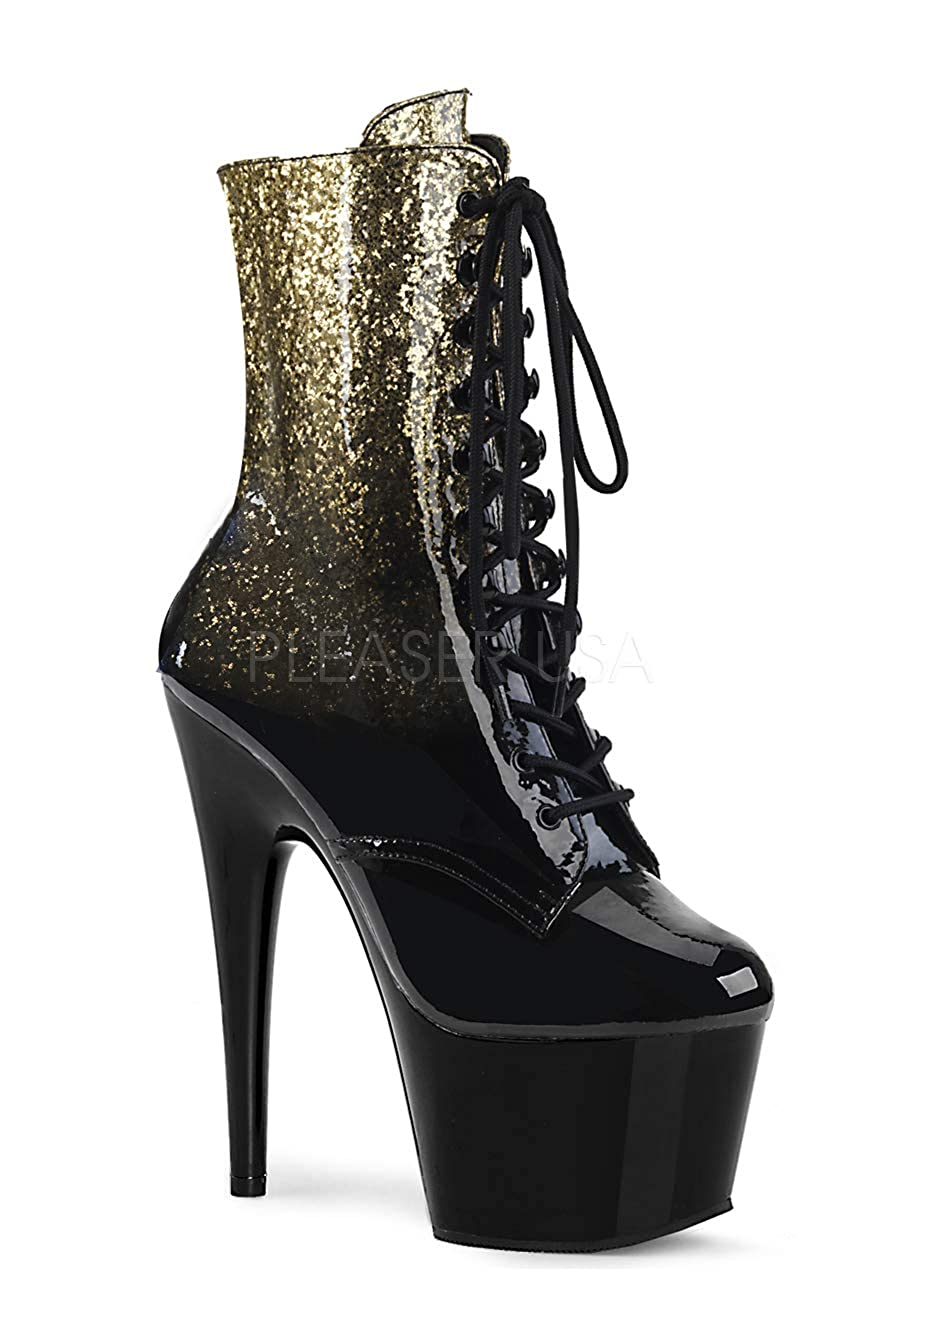 gold-black Gltr Patent Pleaser Women's Adore-1020OMB Ankle-High Boot